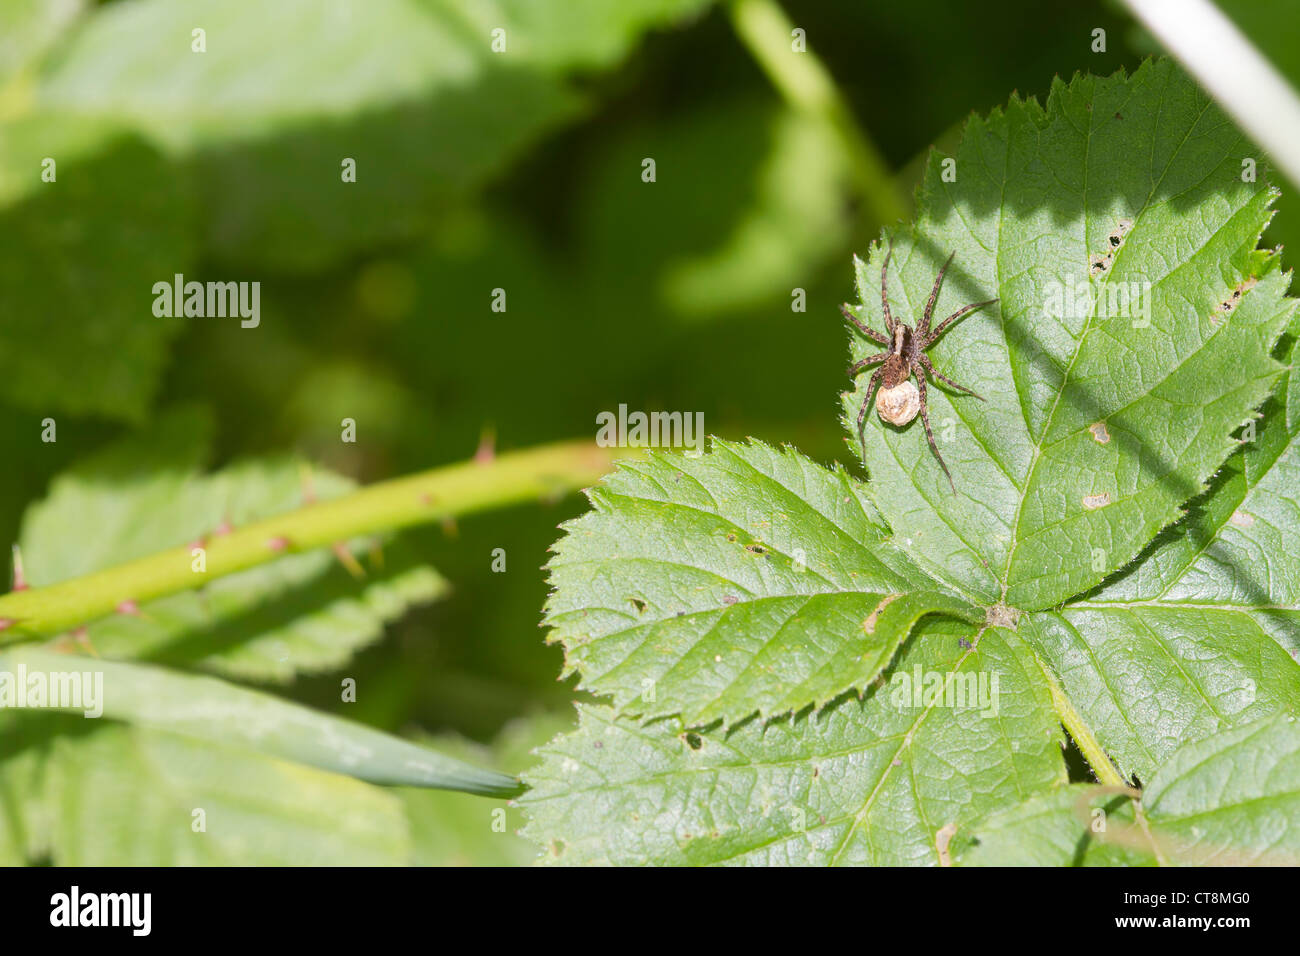 Spider ( Pardosa monticola) on a leaf With eggs - Stock Image